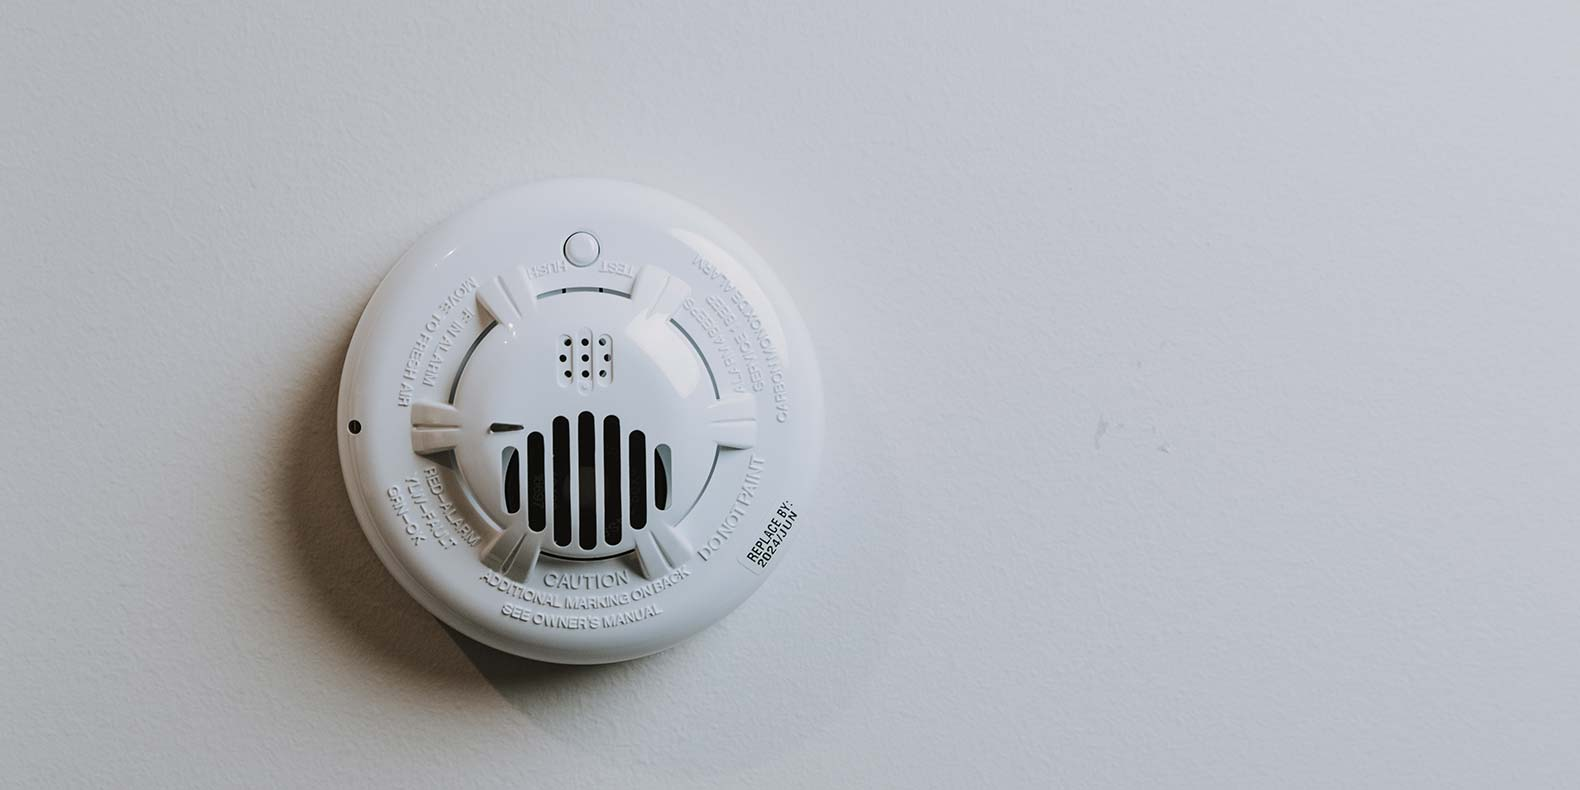 Why Your Carbon Monoxide Detector is Beeping